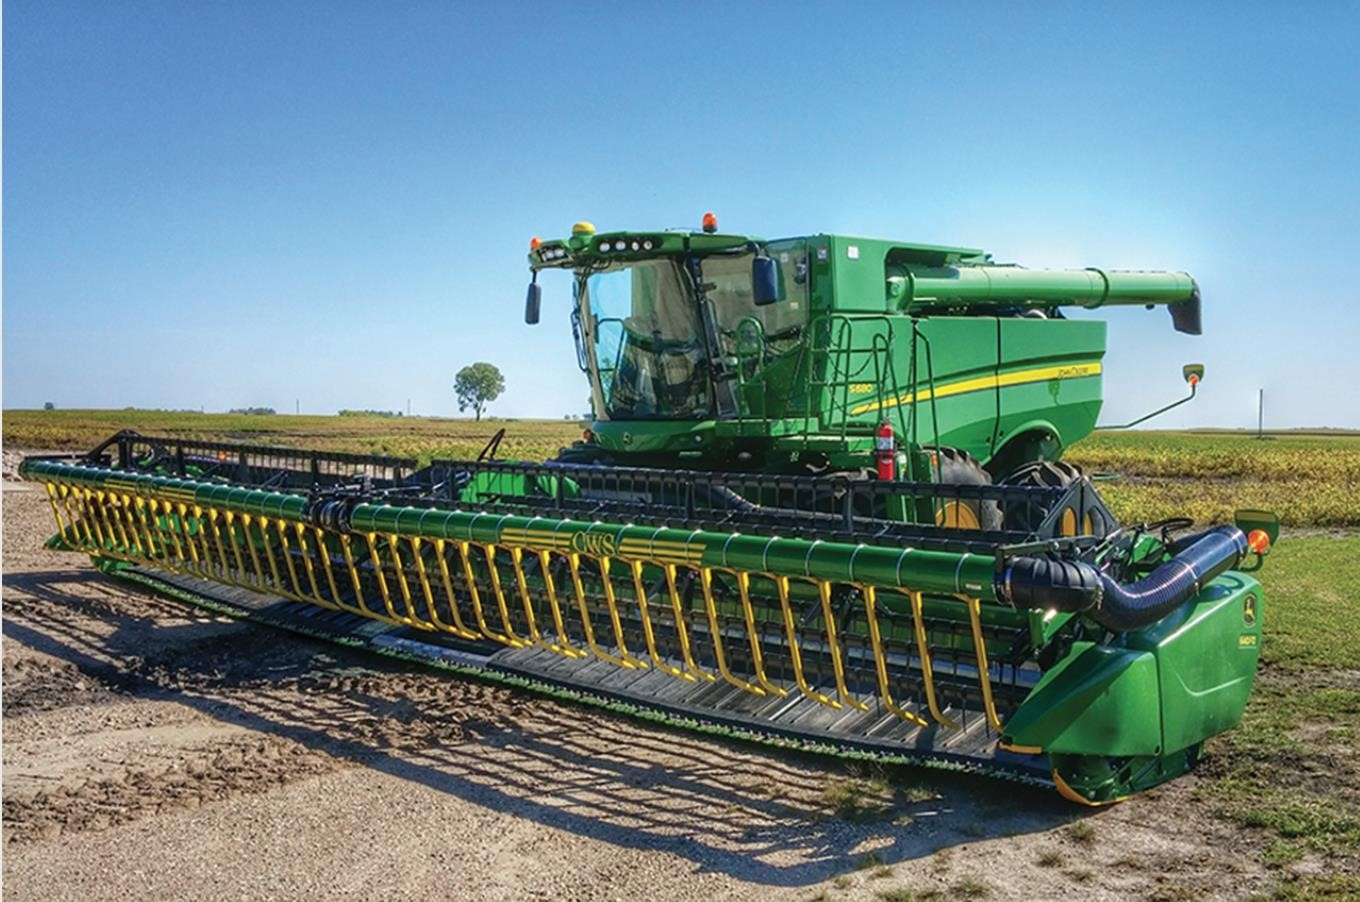 2021 Crary WIND SYSTEM Harvesting Attachment